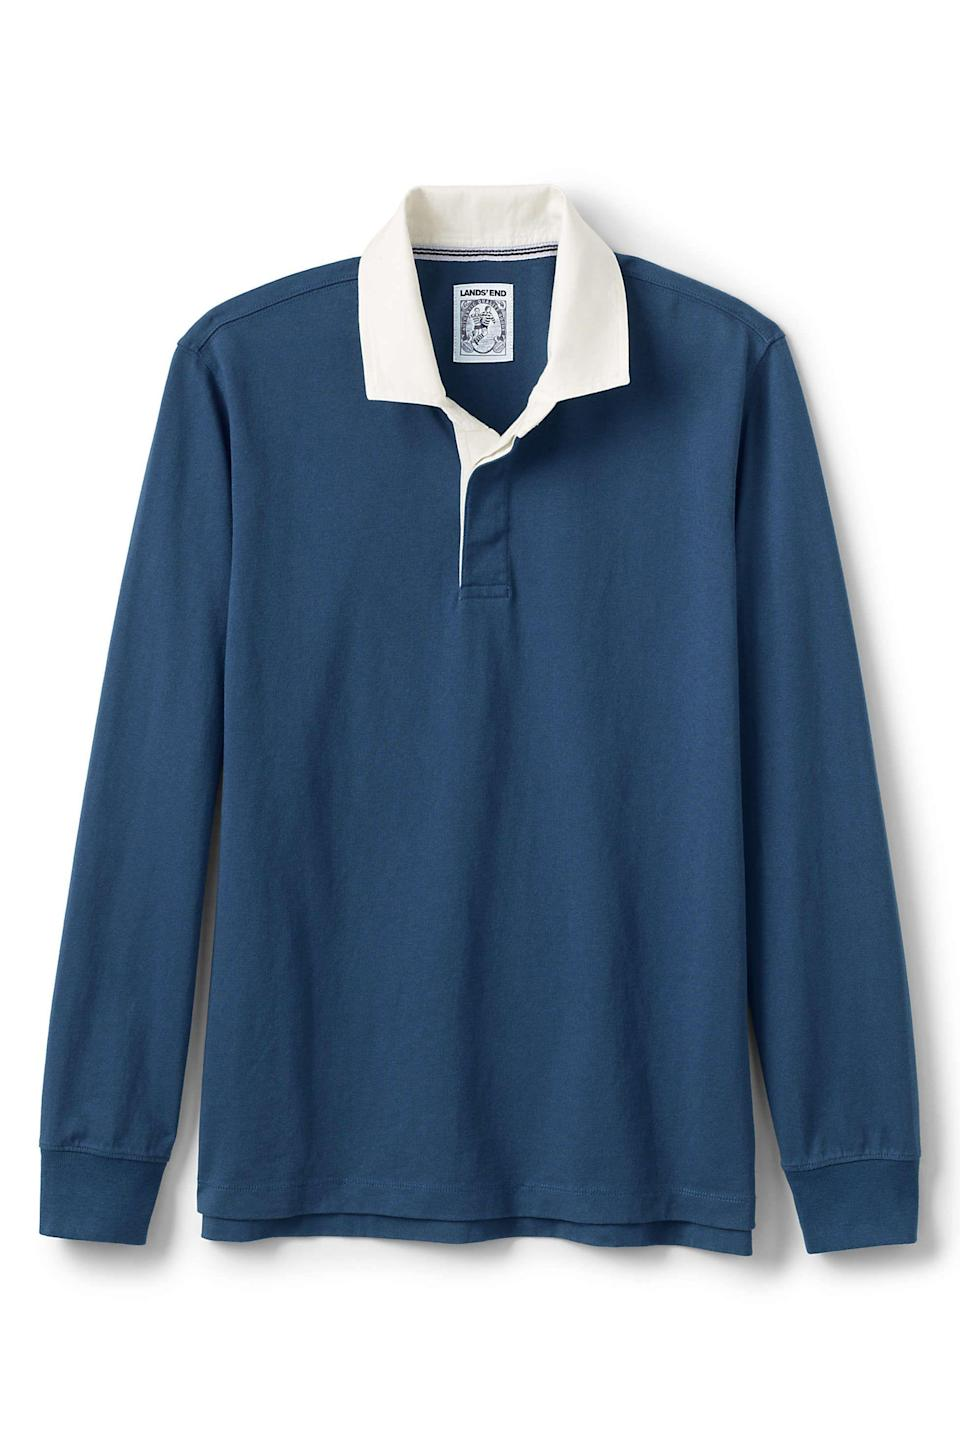 """<p><strong>'lands'' end'</strong></p><p>landsend.com</p><p><strong>$69.95</strong></p><p><a href=""""https://go.redirectingat.com?id=74968X1596630&url=https%3A%2F%2Fwww.landsend.com%2Fproducts%2Fmens-long-sleeve-stripe-rugby-shirt%2Fid_325595&sref=https%3A%2F%2Fwww.esquire.com%2Fstyle%2Fmens-fashion%2Fg28074063%2Fbest-rugby-shirts%2F"""" rel=""""nofollow noopener"""" target=""""_blank"""" data-ylk=""""slk:Shop Now"""" class=""""link rapid-noclick-resp"""">Shop Now</a></p>"""